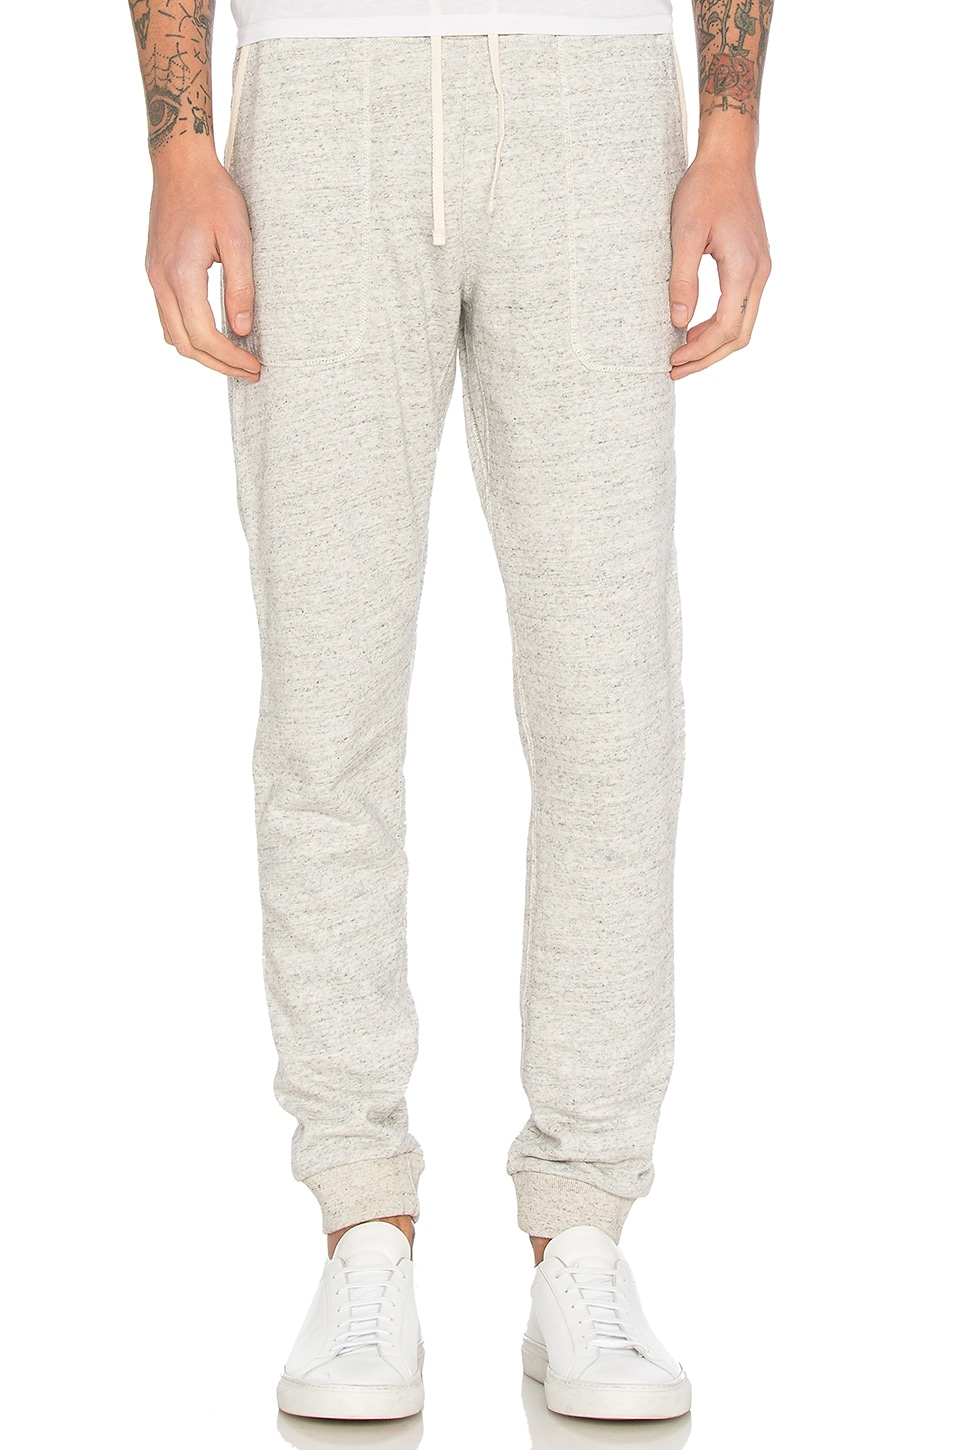 Home Alone Sweat Pants by Scotch & Soda